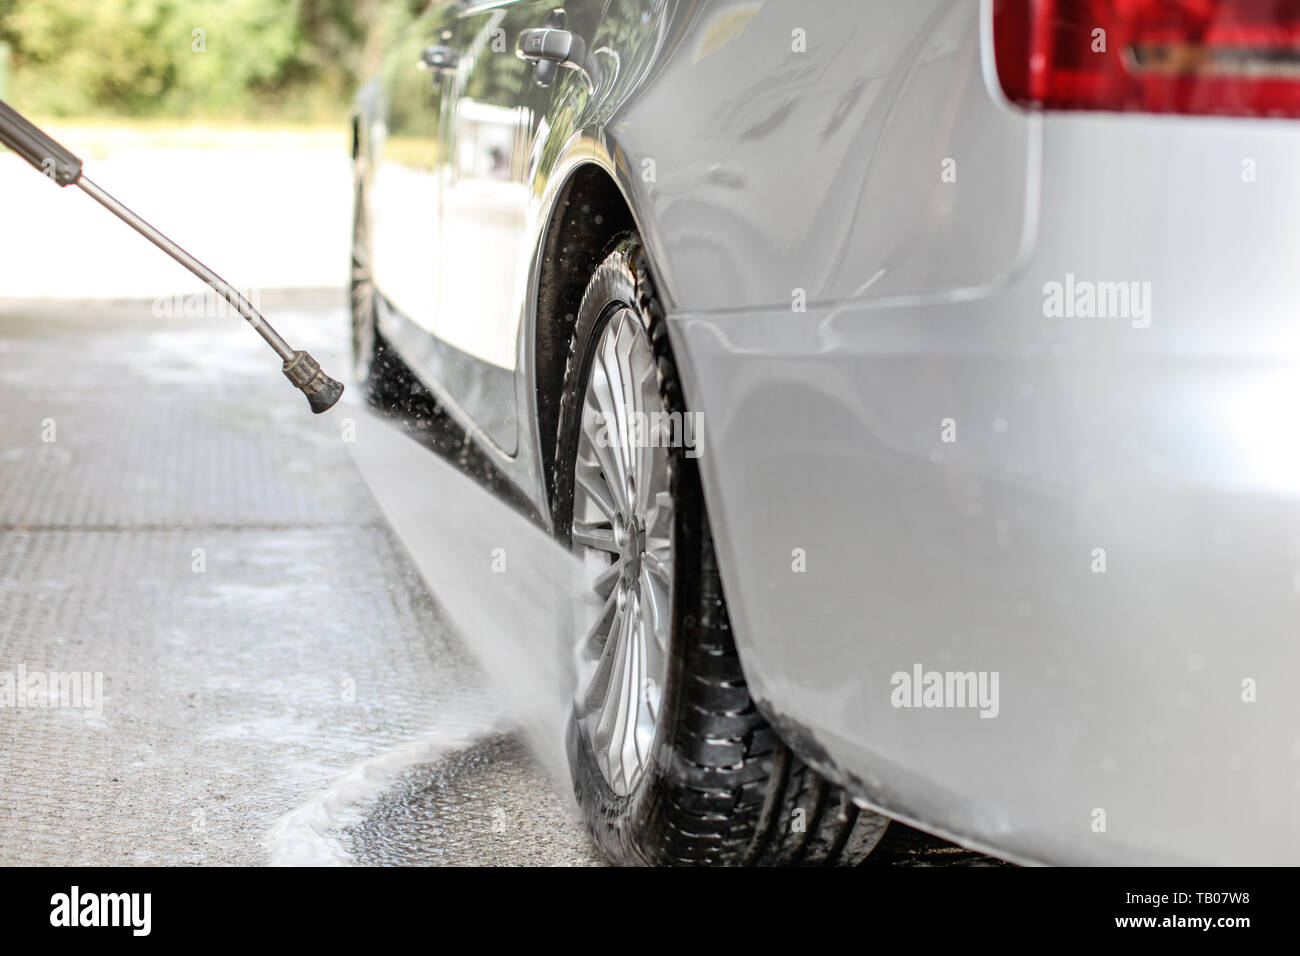 Water Nozzle Spraying Car Wash Stock Photos & Water Nozzle